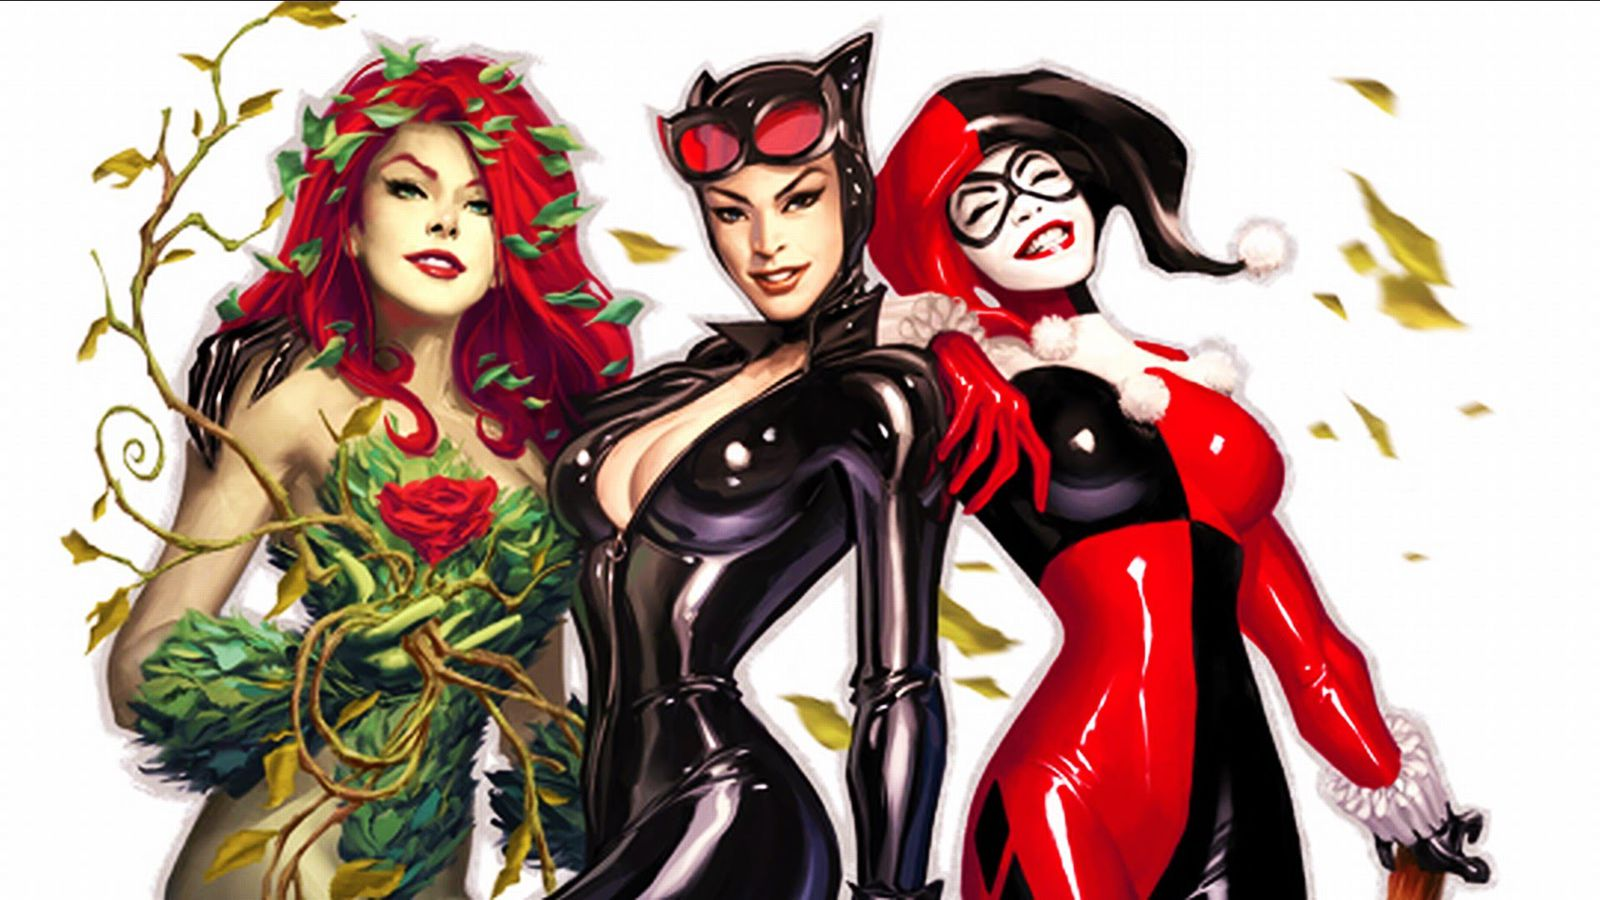 Harley Quinns Spinoff Movie Is Called Gotham City Sirens - The Verge-6217